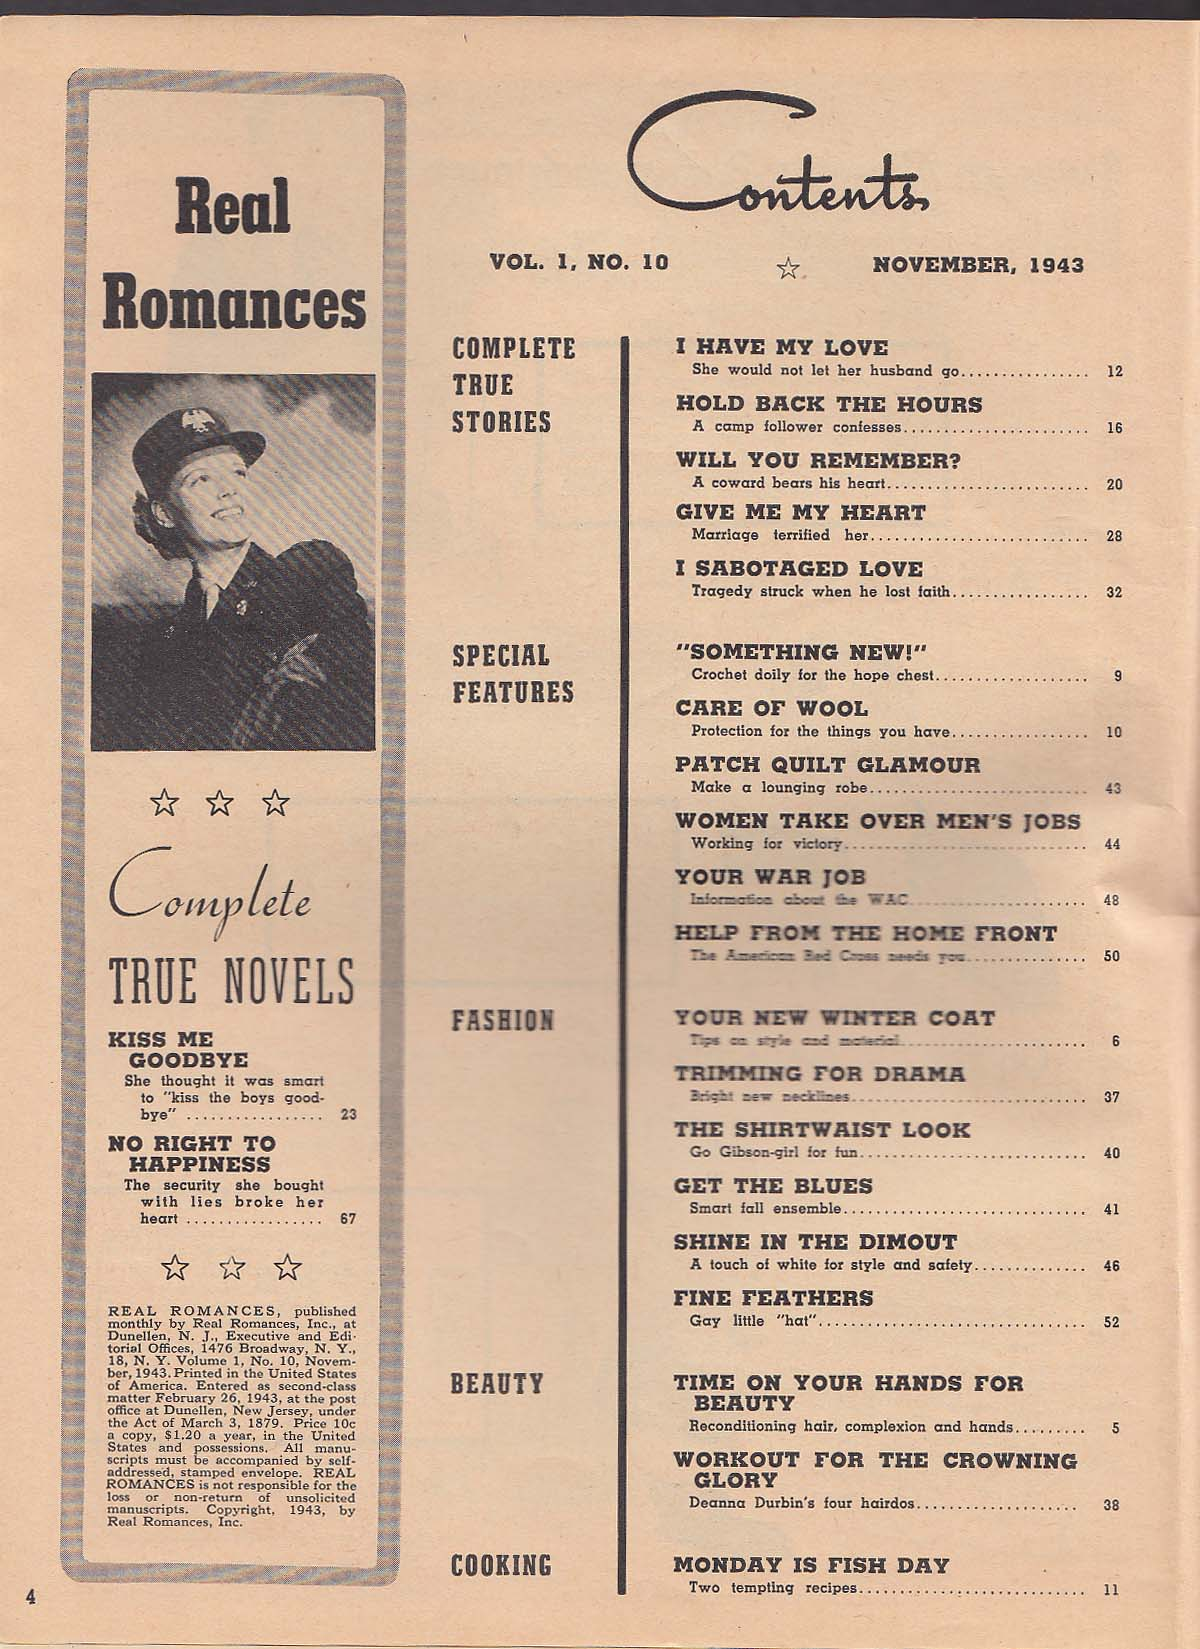 REAL ROMANCES Crochet; quilts; WAC; American Red Cross; beauty etc + 11 1943